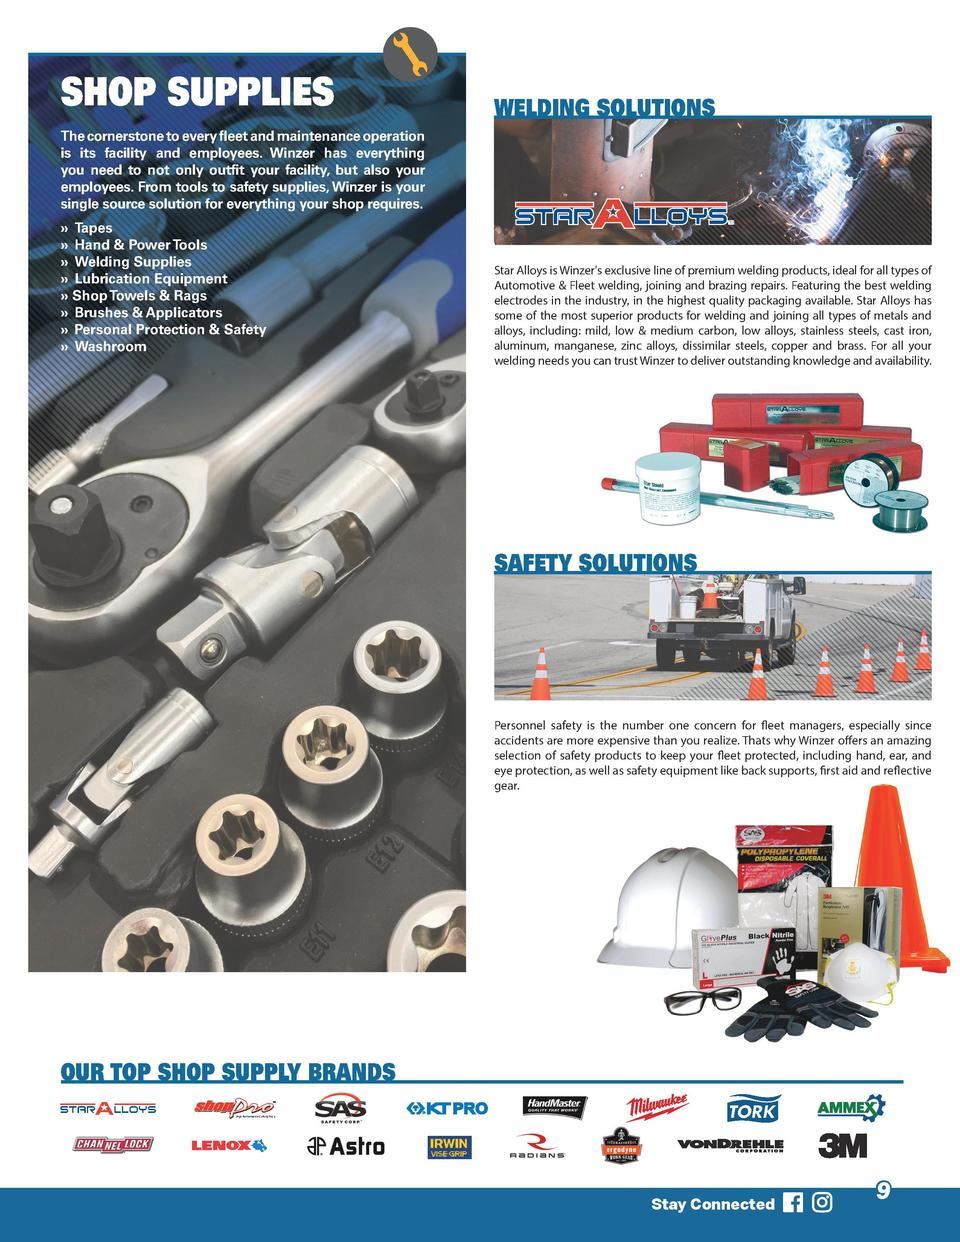 SHOP SUPPLIES  WELDING SOLUTIONS  The cornerstone to every fleet and maintenance operation is its facility and employees. ...